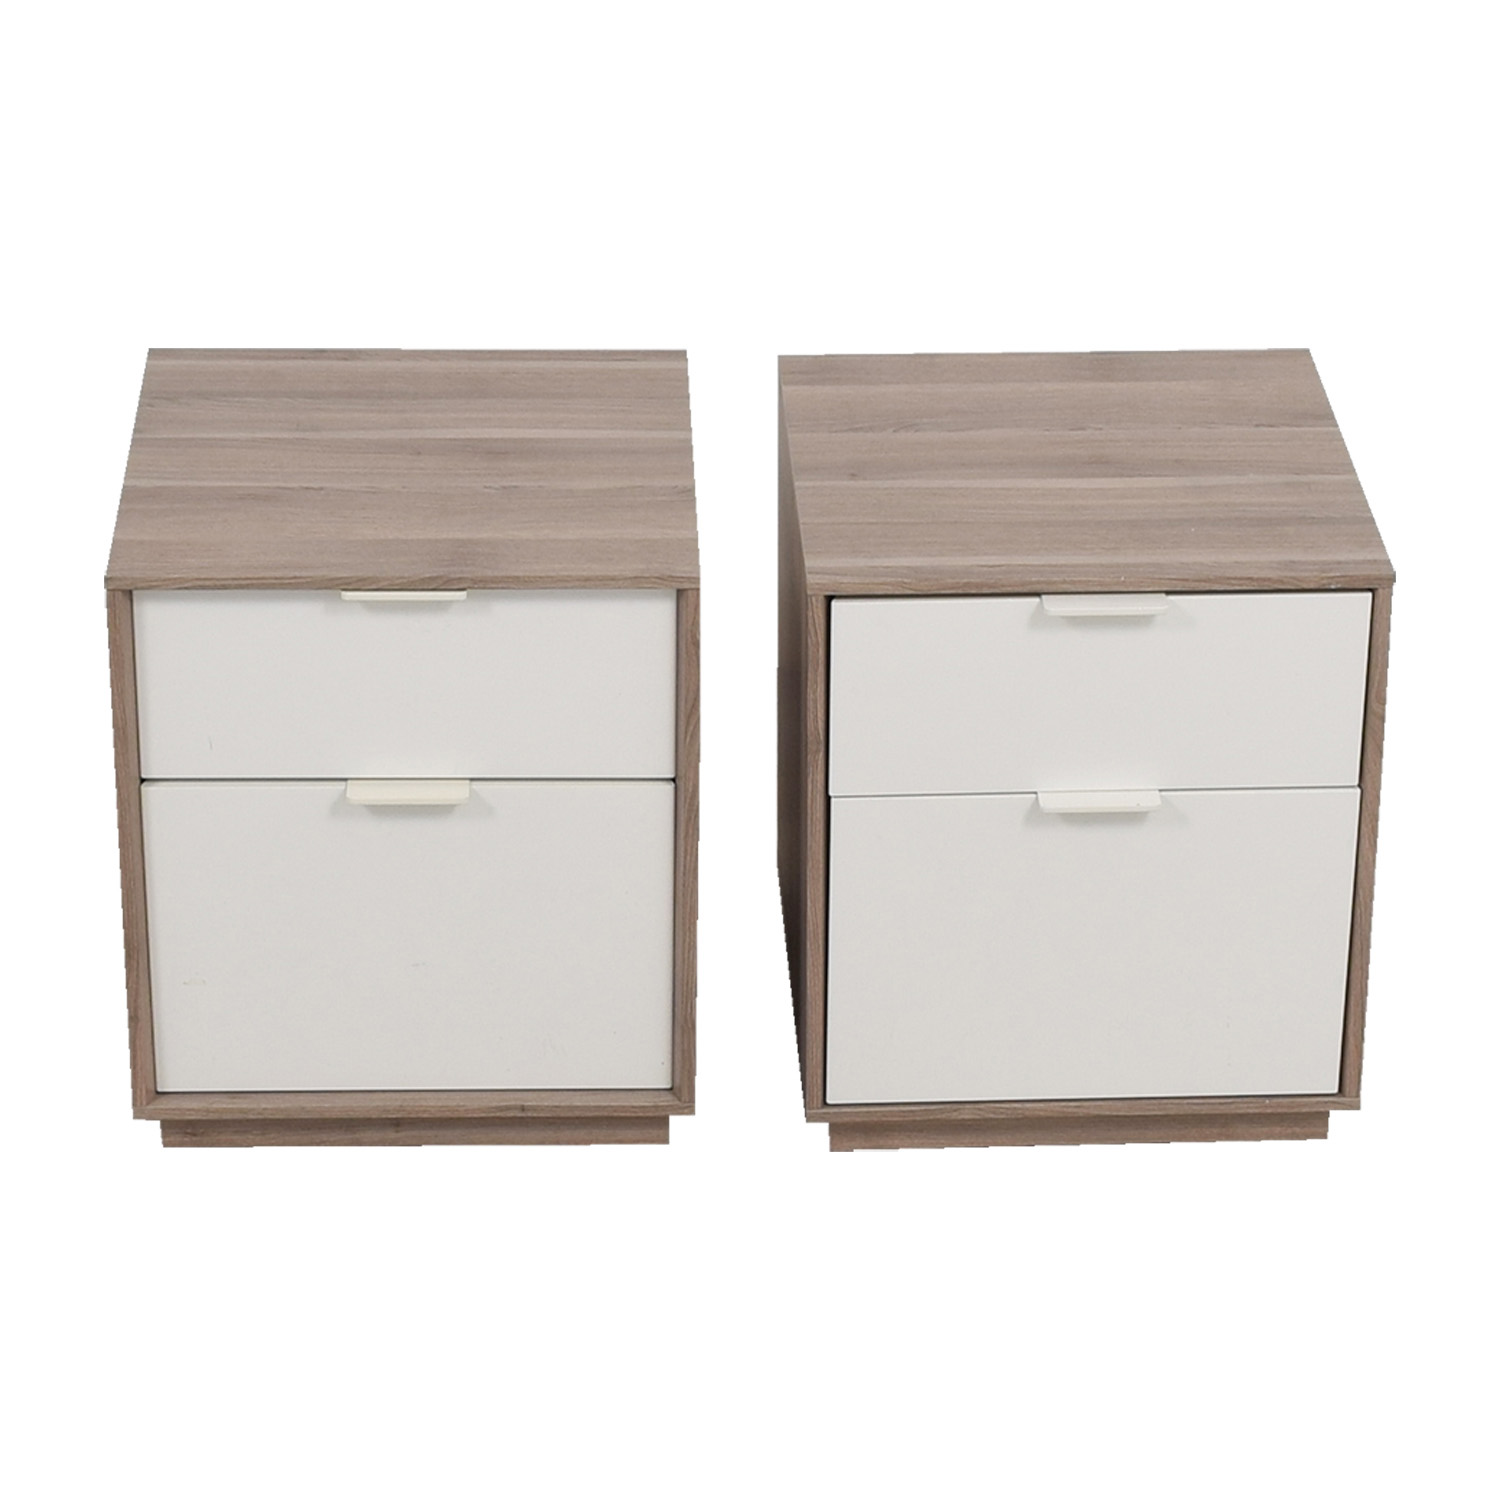 Grey and White Two-Drawer Nightstands used